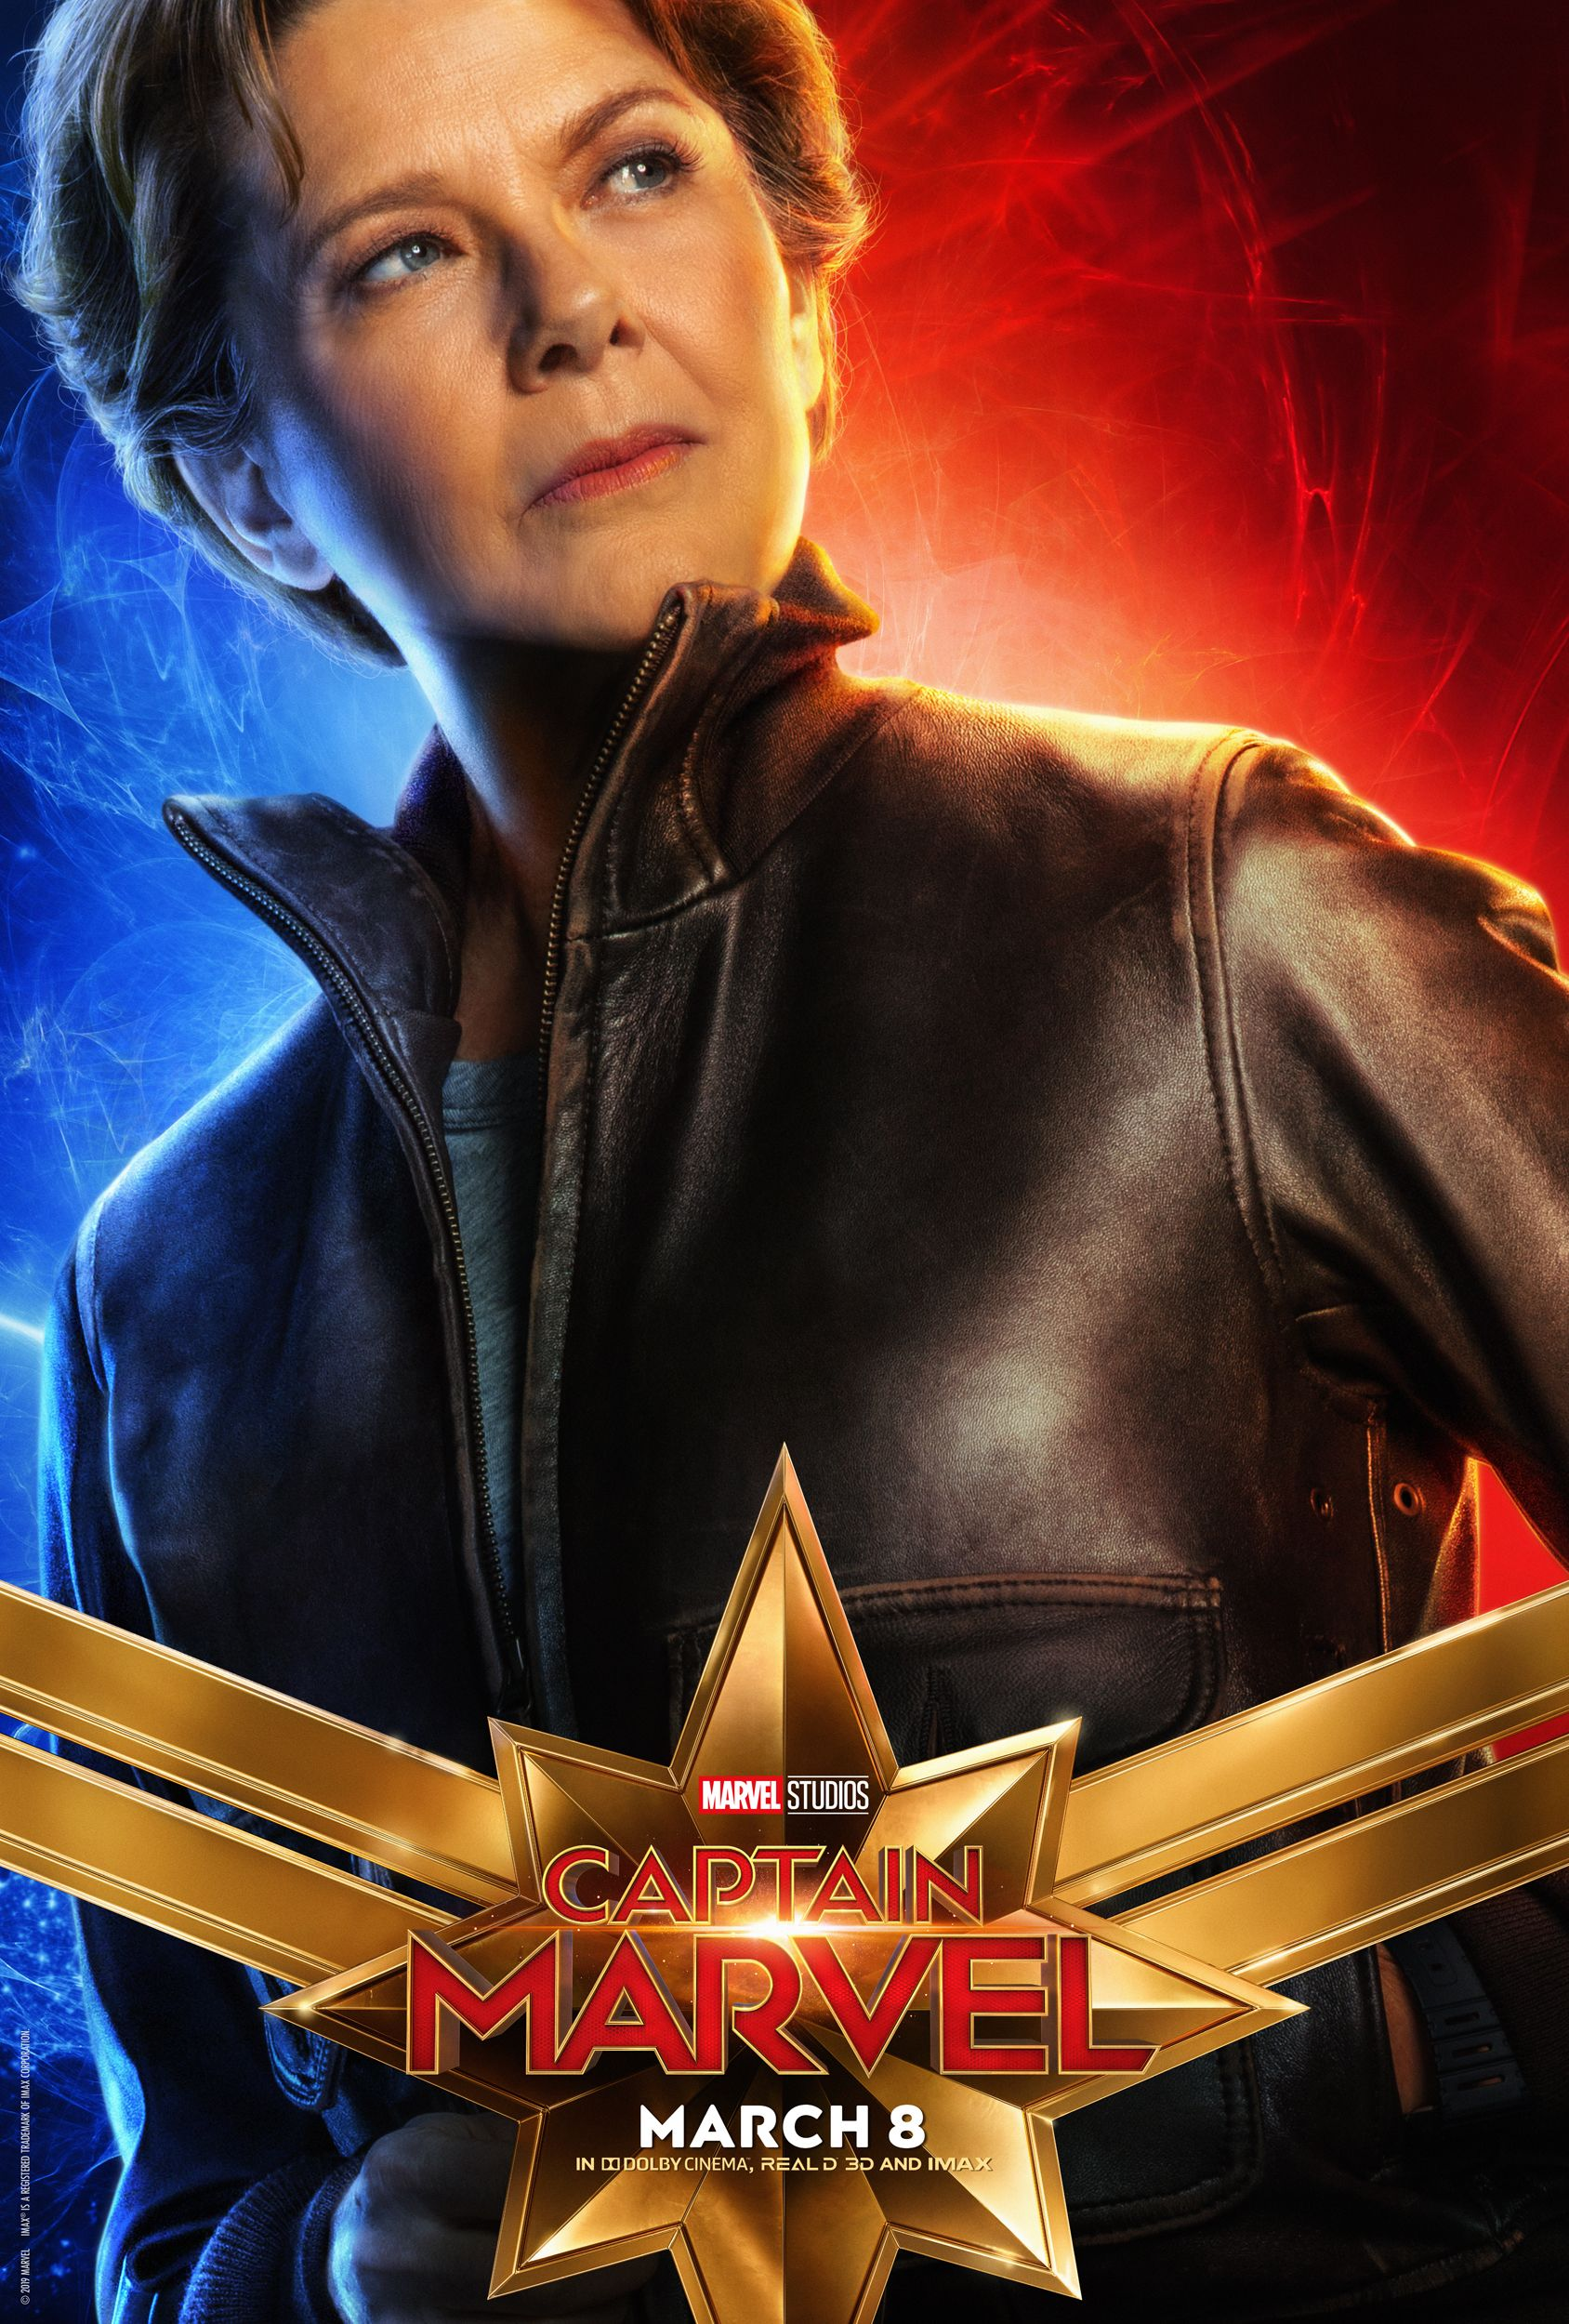 captain marvel character posters reveal brie larson, goose, and more